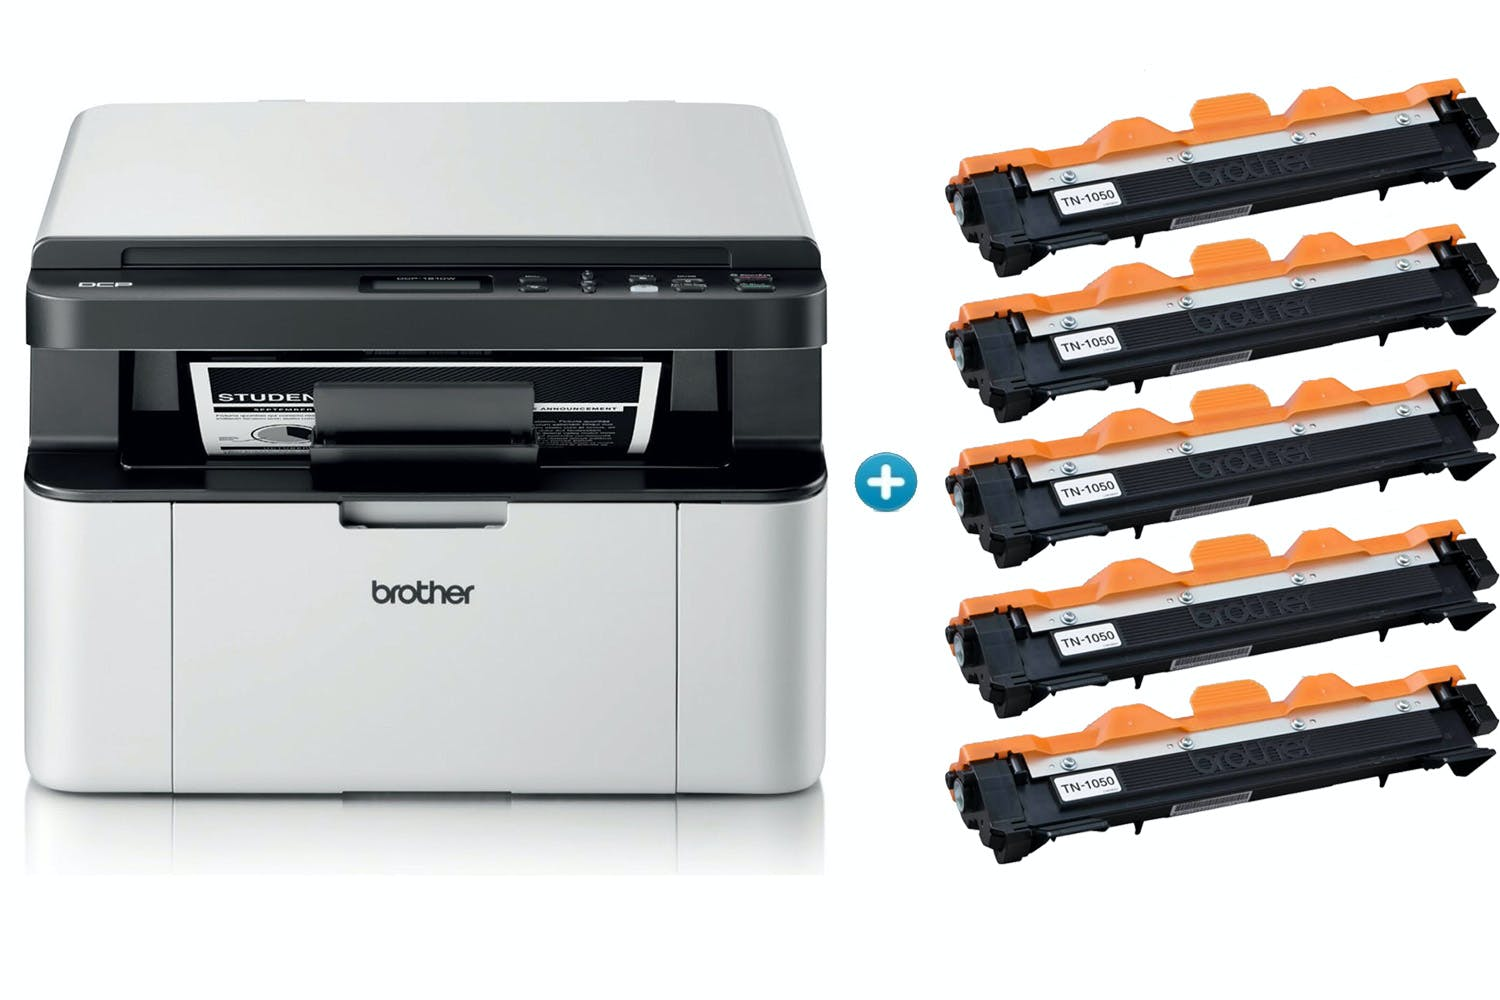 Brother DCP-1610W All-in-One Mono Laser Printer & 5 Toner Bundle